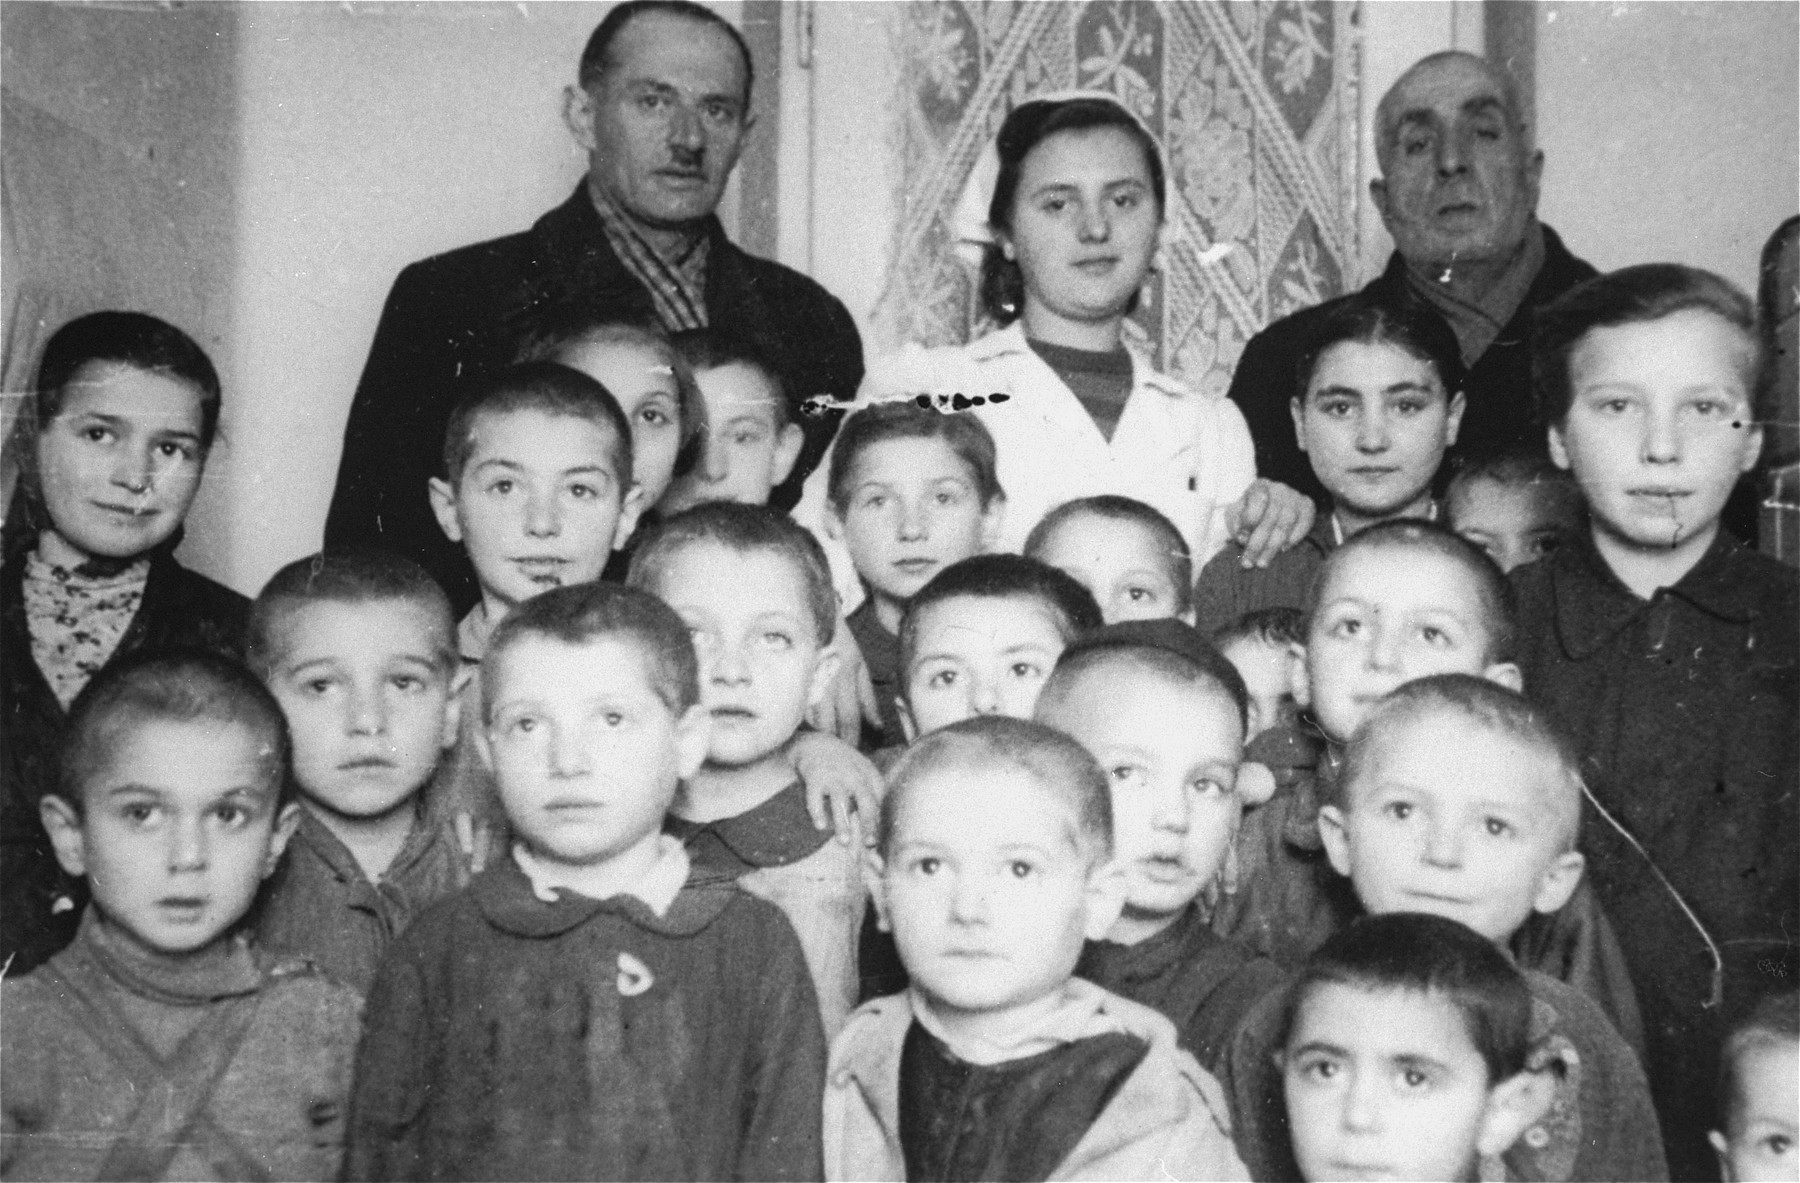 Group portrait of the children and staff of a daycare center in the Kielce ghetto that was administered by the Judenrat (Jewish Council).  This photo was one the images included in an official album prepared by the Judenrat of the Kielce ghetto in 1942.